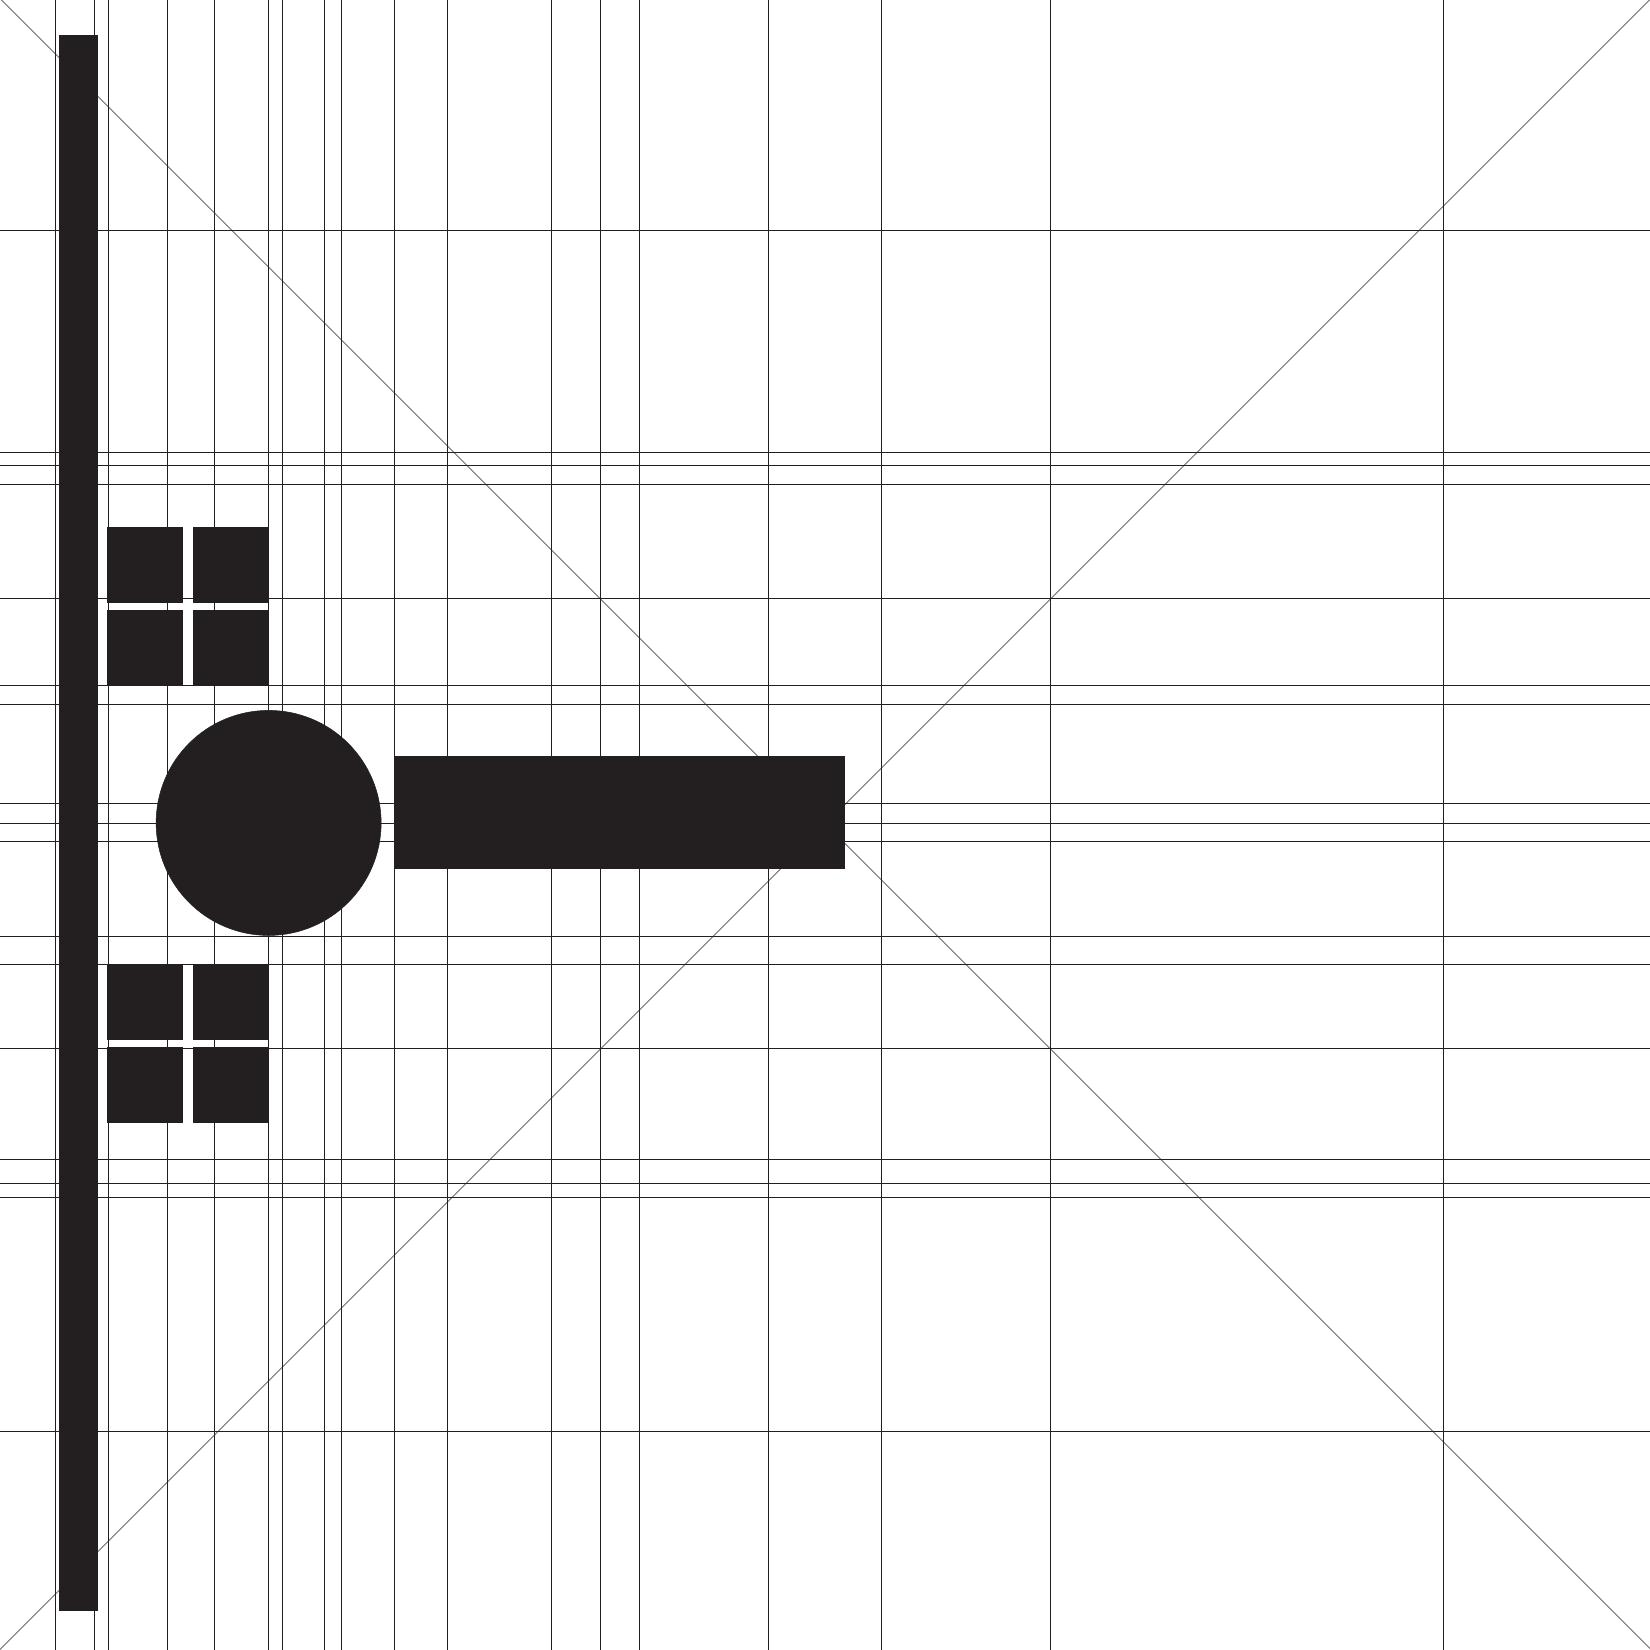 Assignment5_process2_#3_shapes.lines_000001.jpg